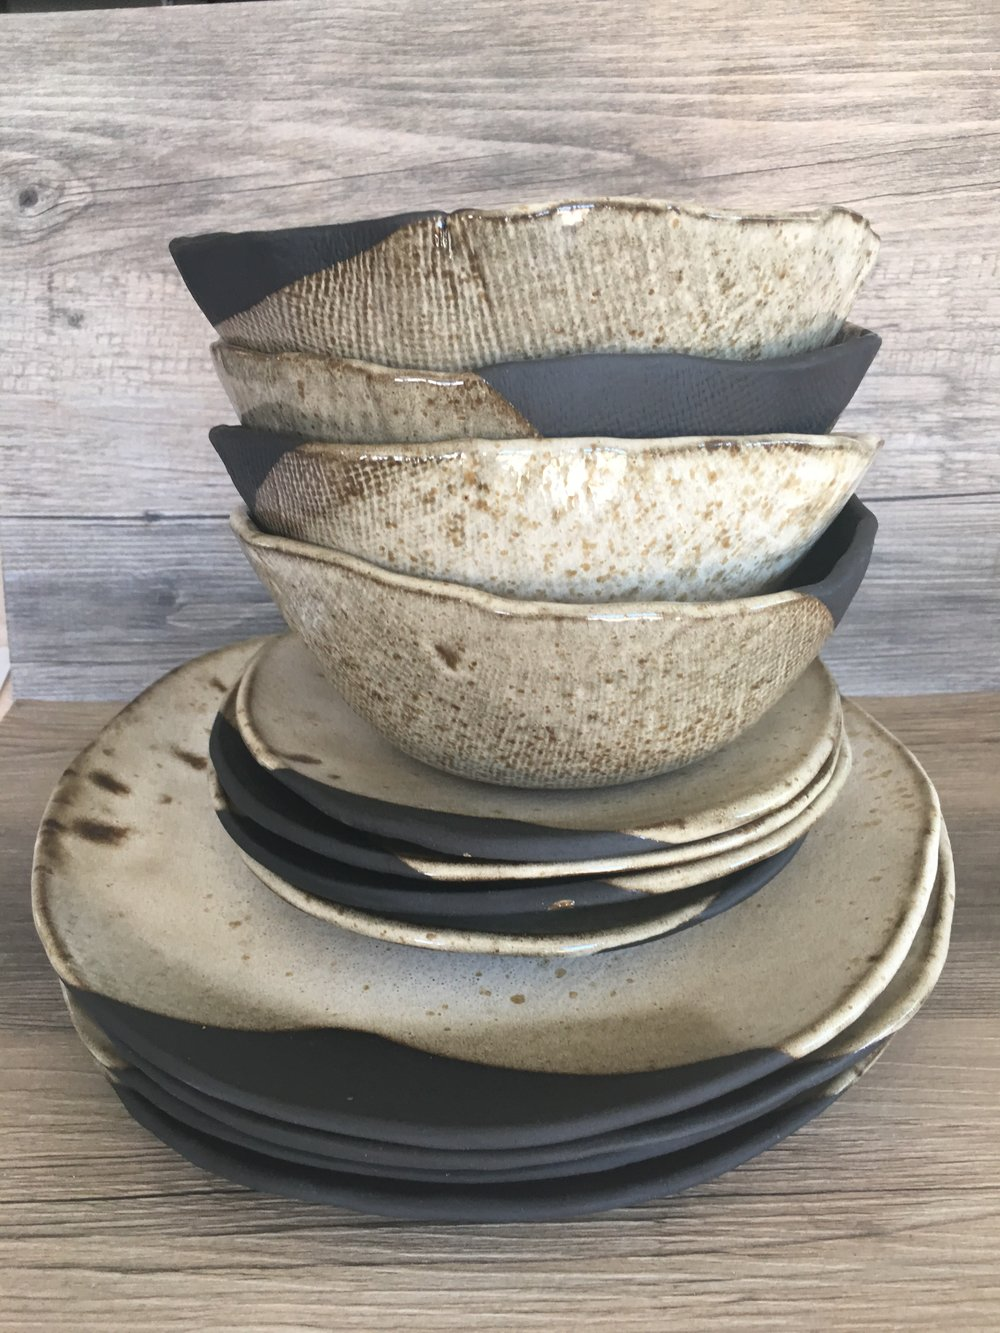 Ceramic dinner plates Dinnerware set Modern and Chic ceramic dinner plates - set of 4 - silky white glaze on a black clay body - summer cool and clean and ... & IMG_0870.JPG?format\u003d500w